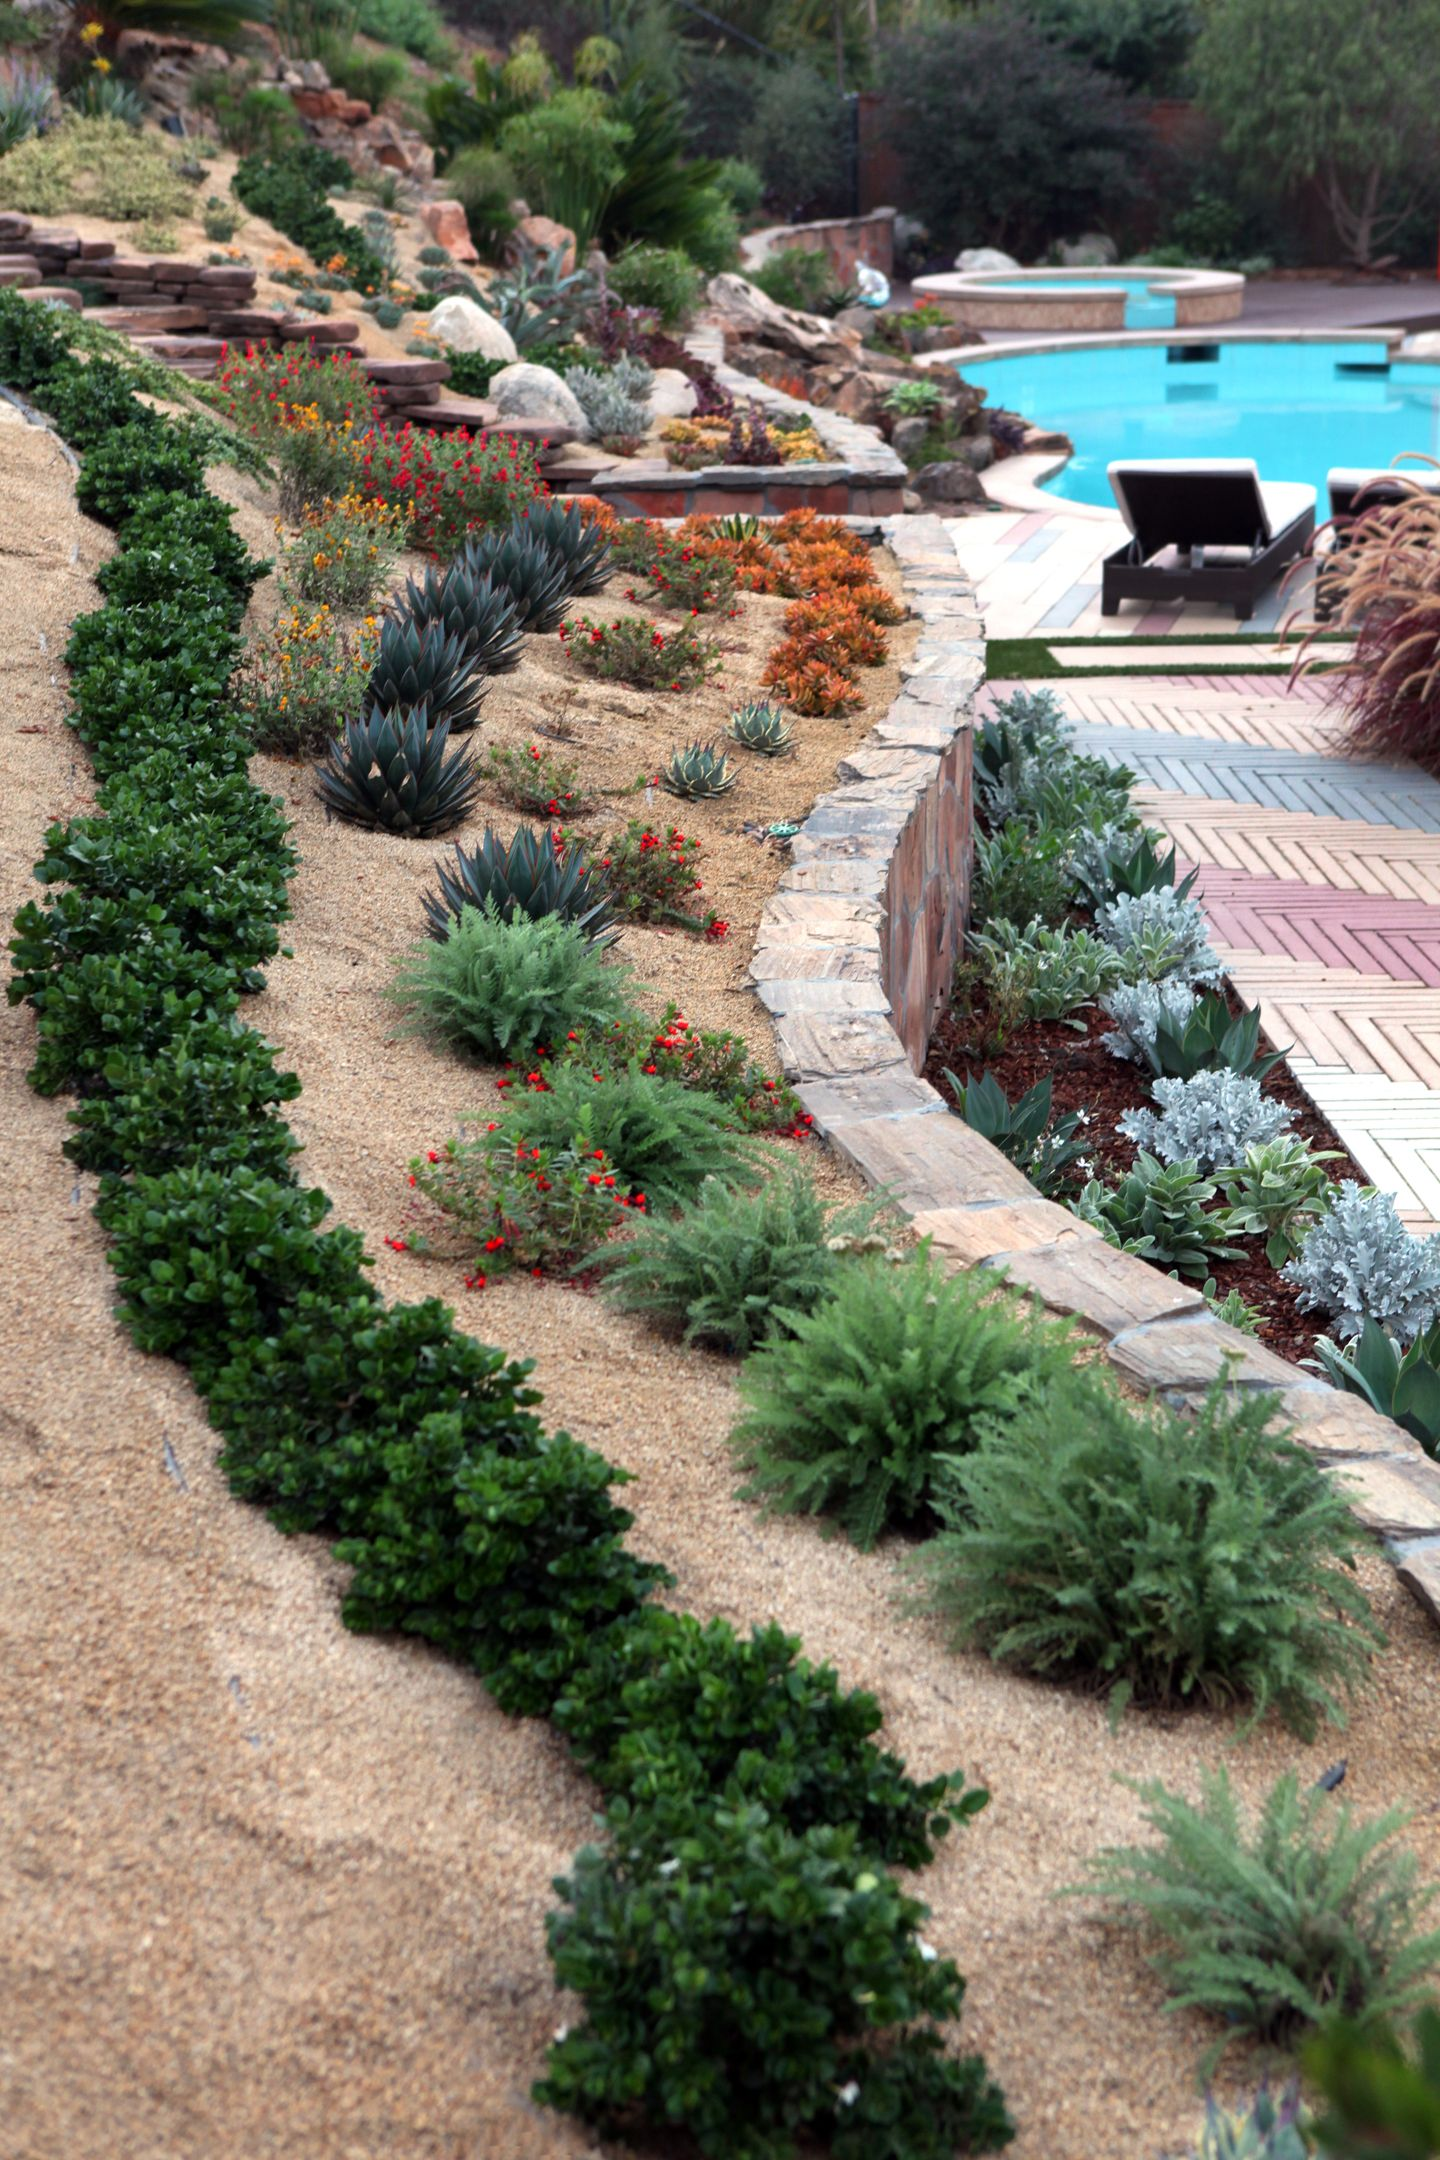 Garden Design Slope back yard landscaping design idea with steep slopesinging